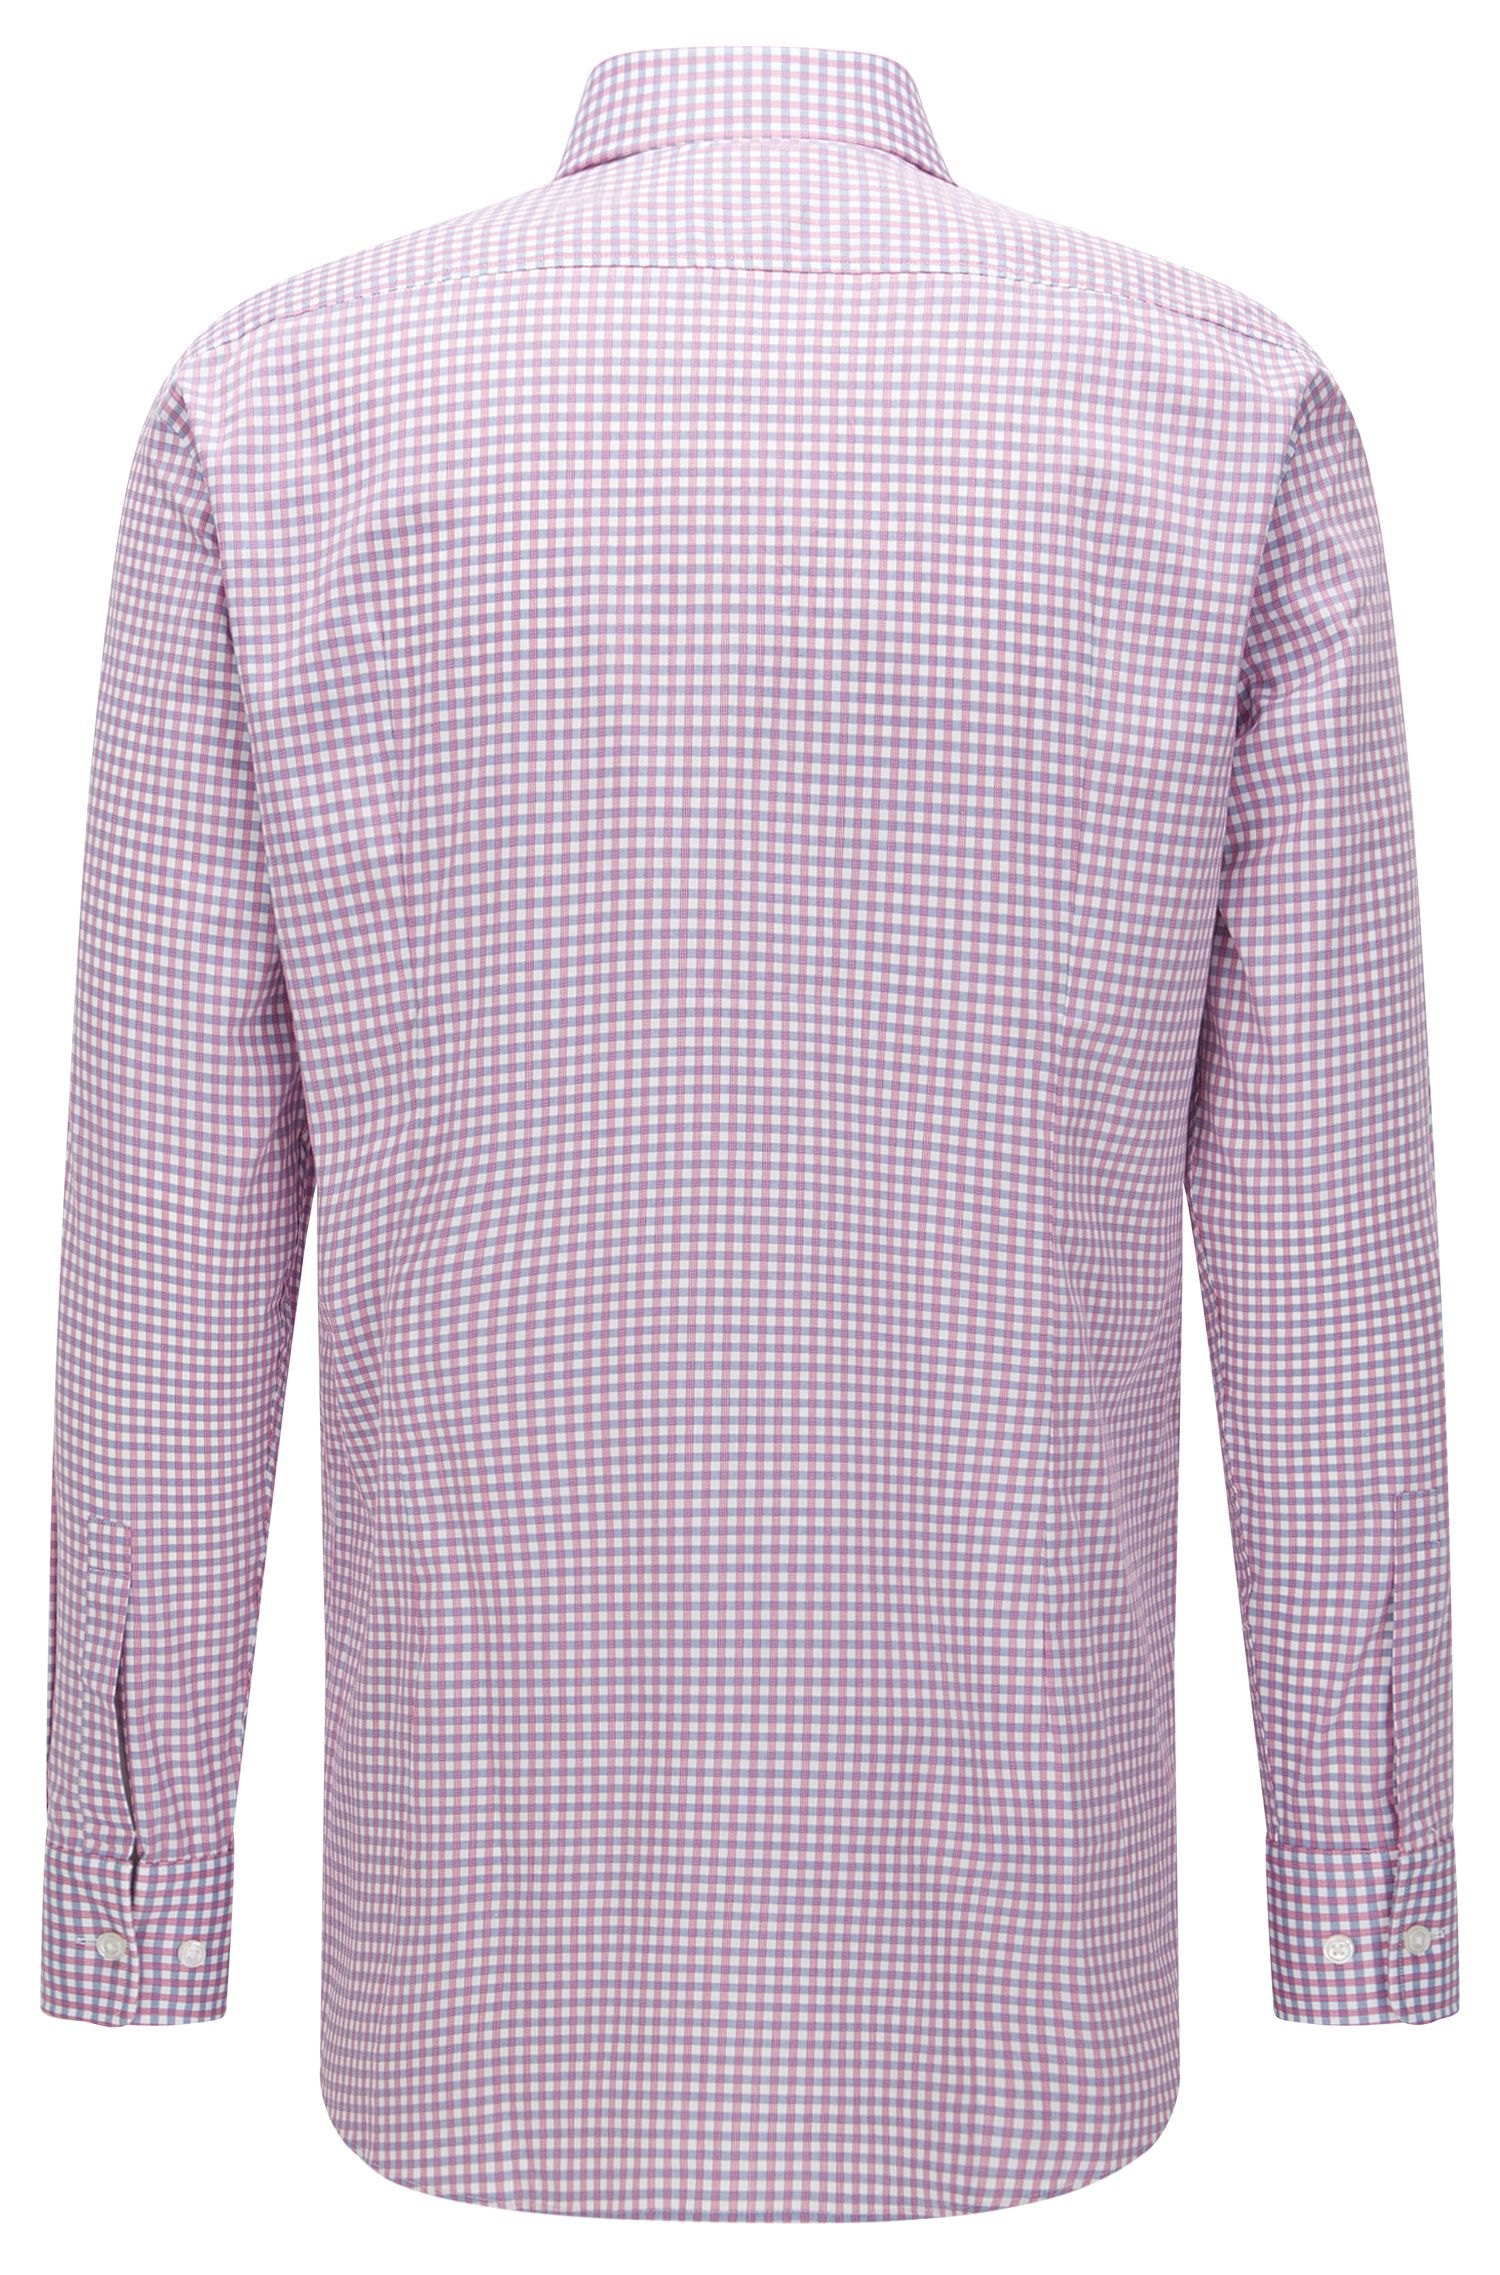 Sheperd's Check Cotton Dress Shirt, Sharp Fit | Mark US, Pink